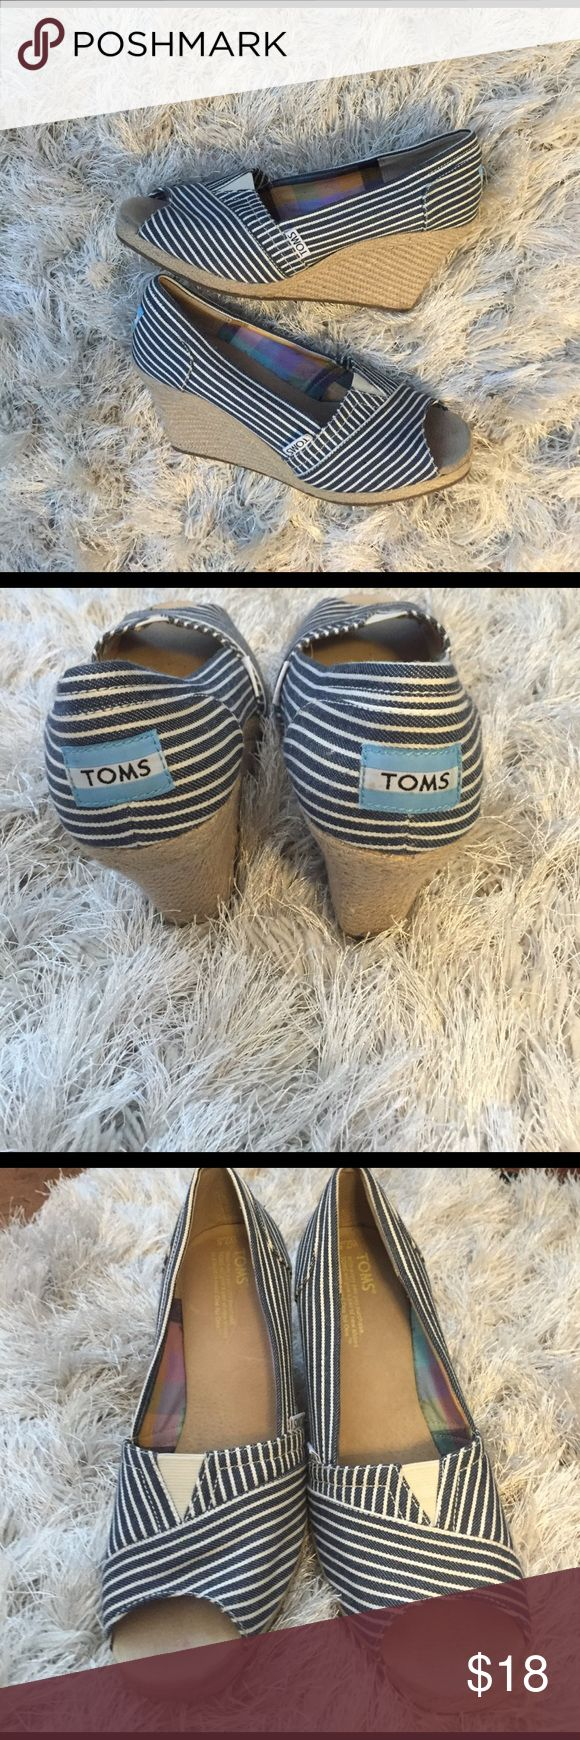 TOMS Espadrilles TOMS  blue and white striped espadrilles                          Size 7.5                                                                                    No flaws minor signs of wear. *bundle and save* Shoes Espadrilles